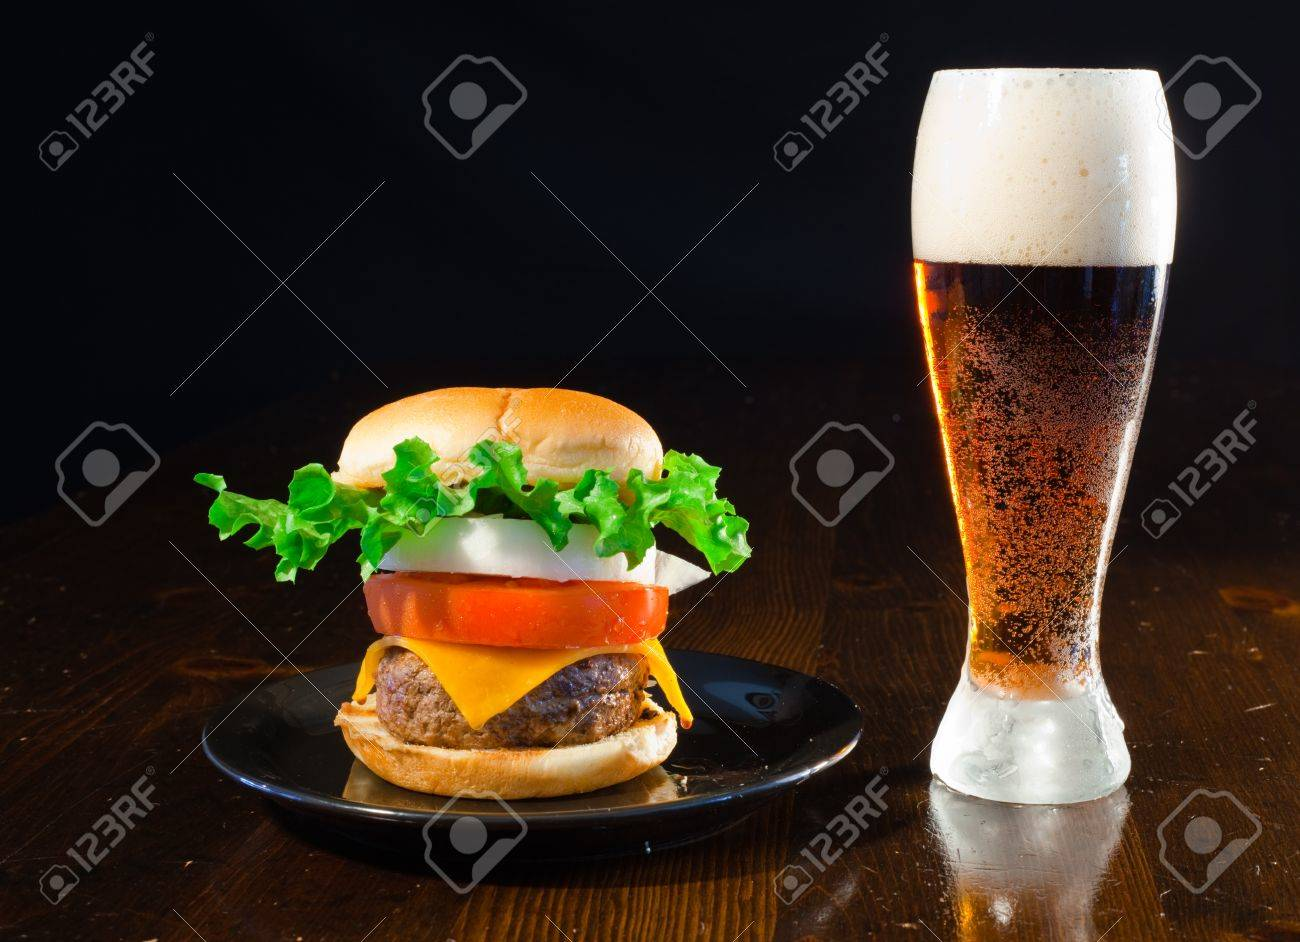 A close up of a big hamburger on a black plate with a cold amber beer. Banque d'images - 8750272